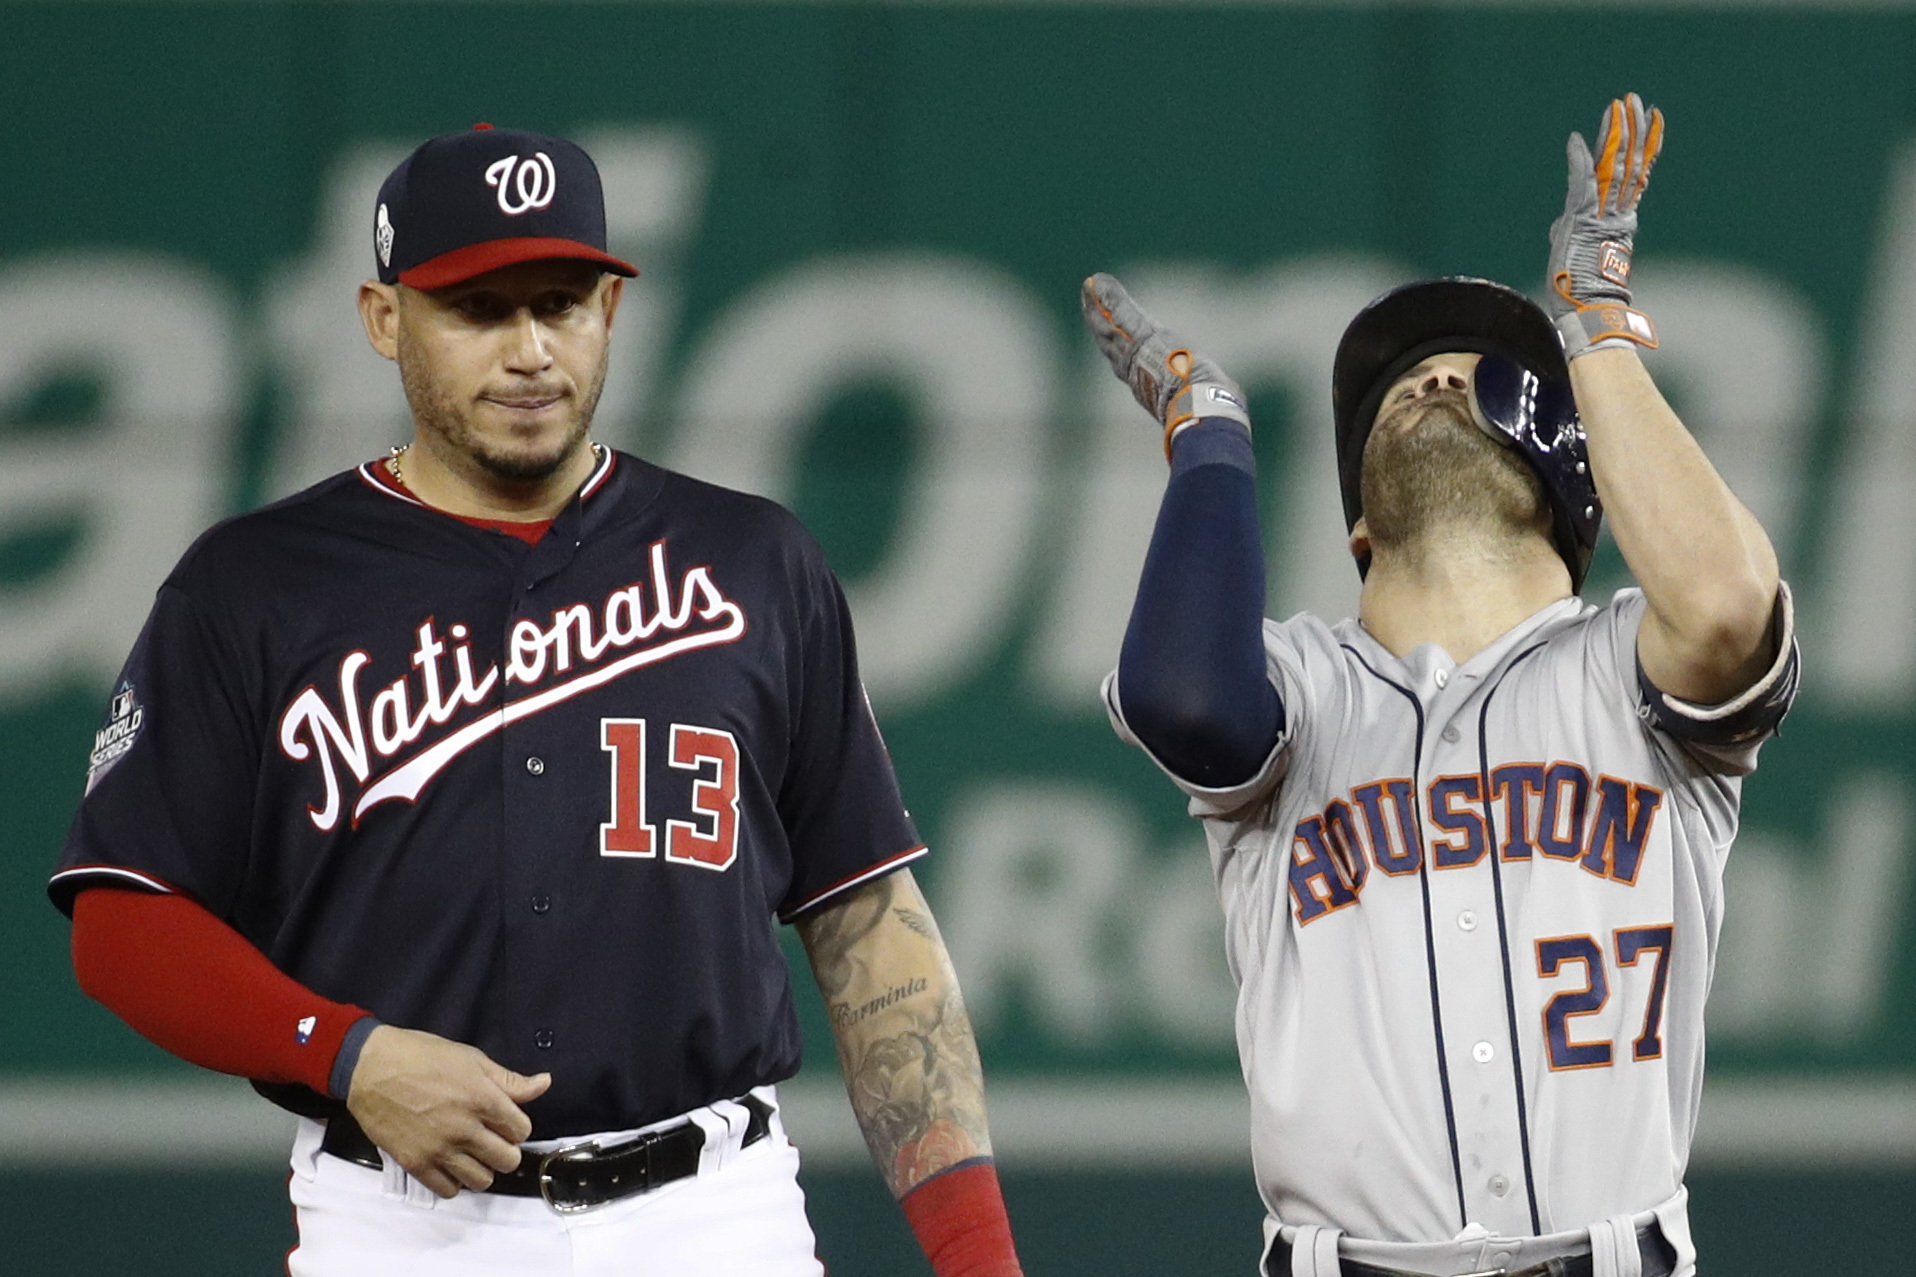 Altuve Astros >> Altuve Astros Show Up In World Series Win Game 3 In Dc 4 1